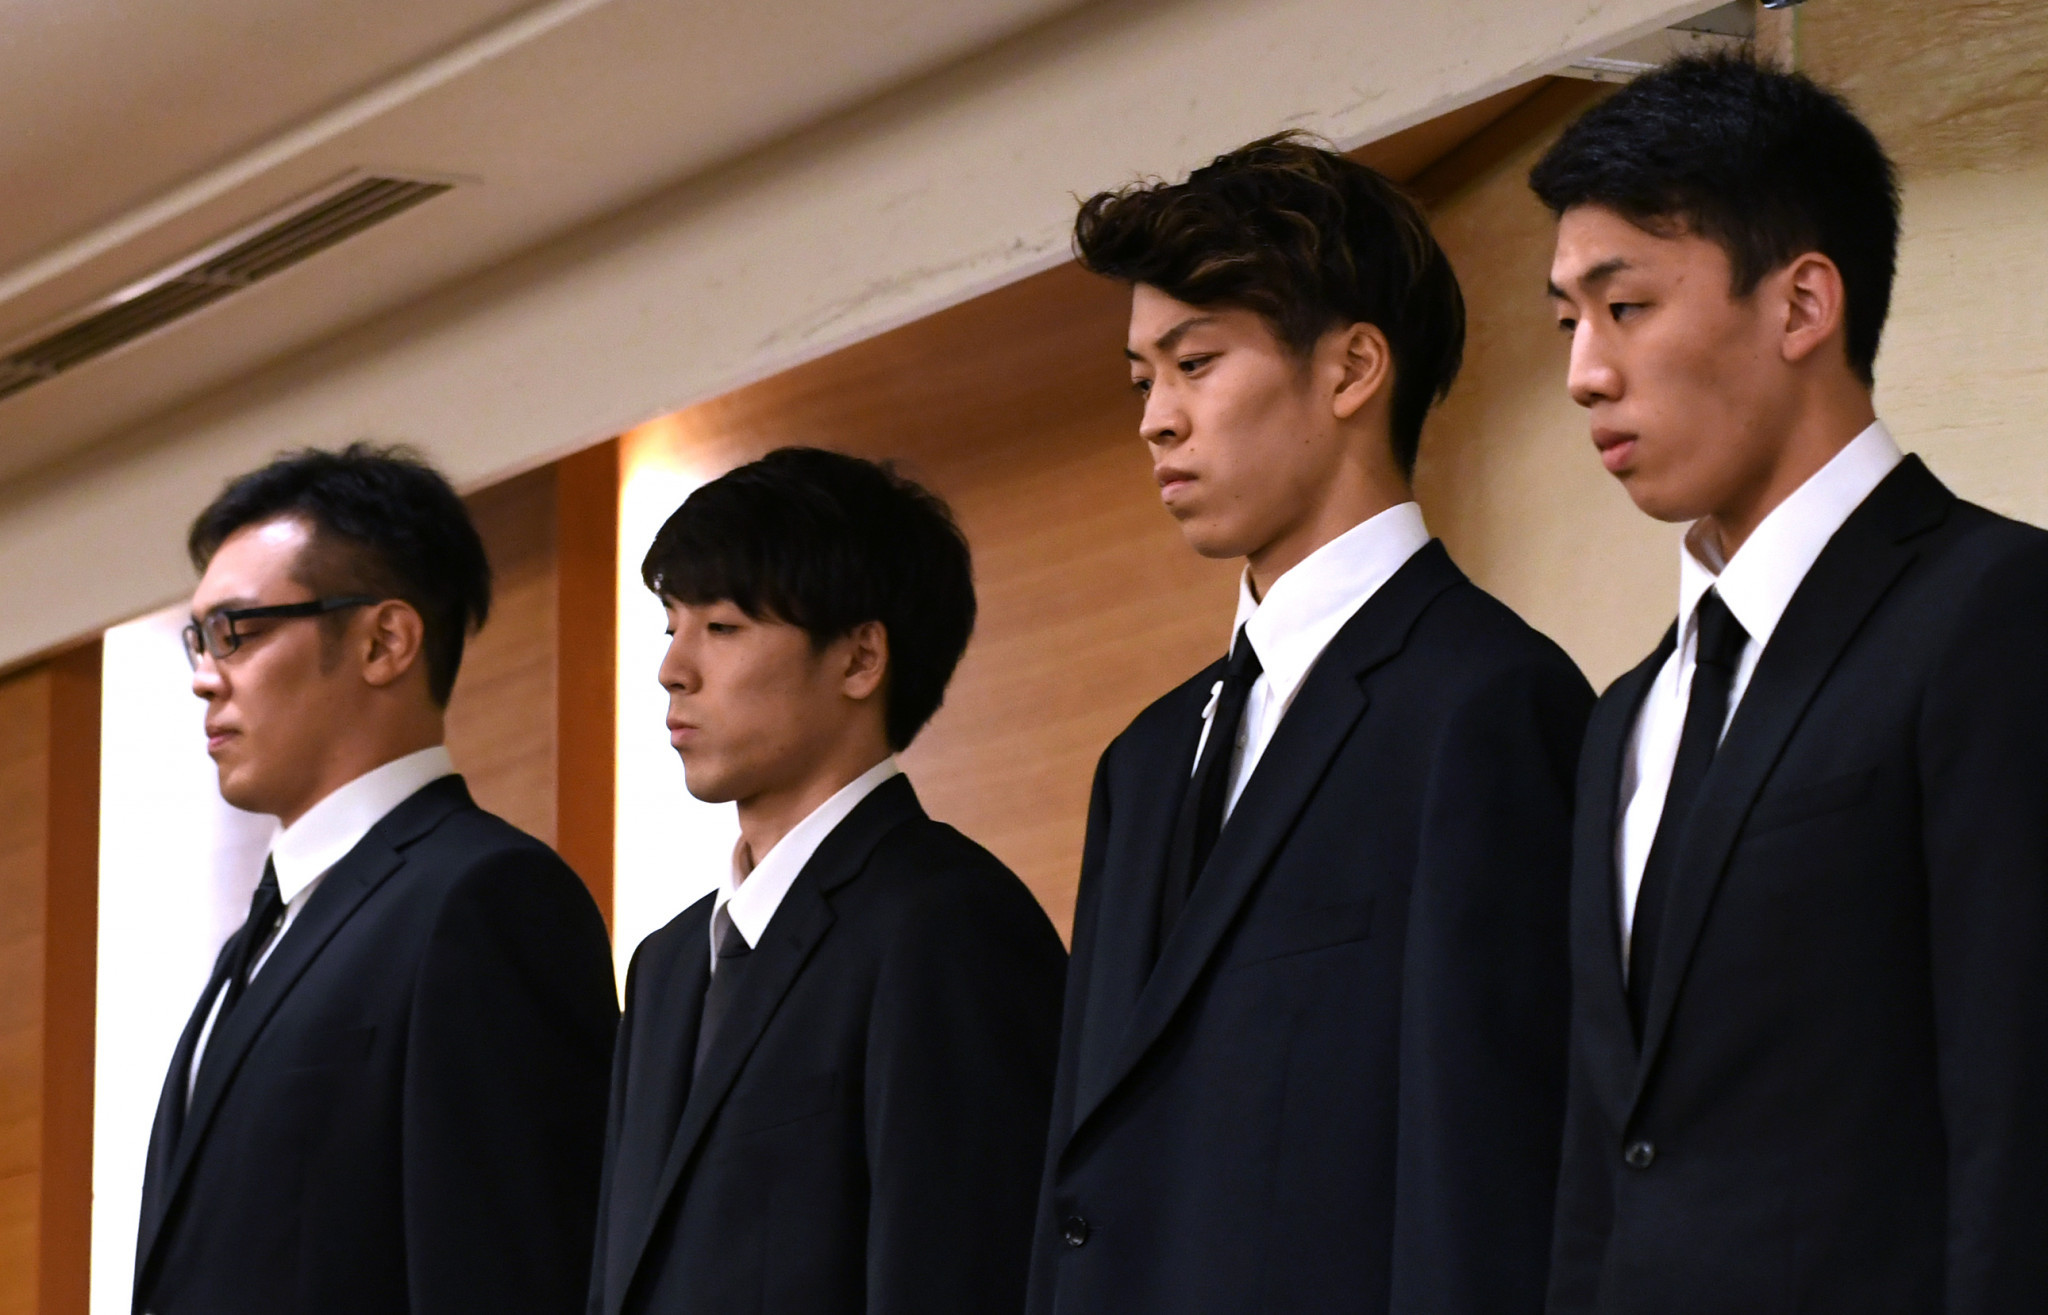 Four members of the Japanese men's basketball team that were kicked out of the squad and sent home from the Asian Games here after they allegedly paid for sex have been handed 12-month suspensions ©Getty Images